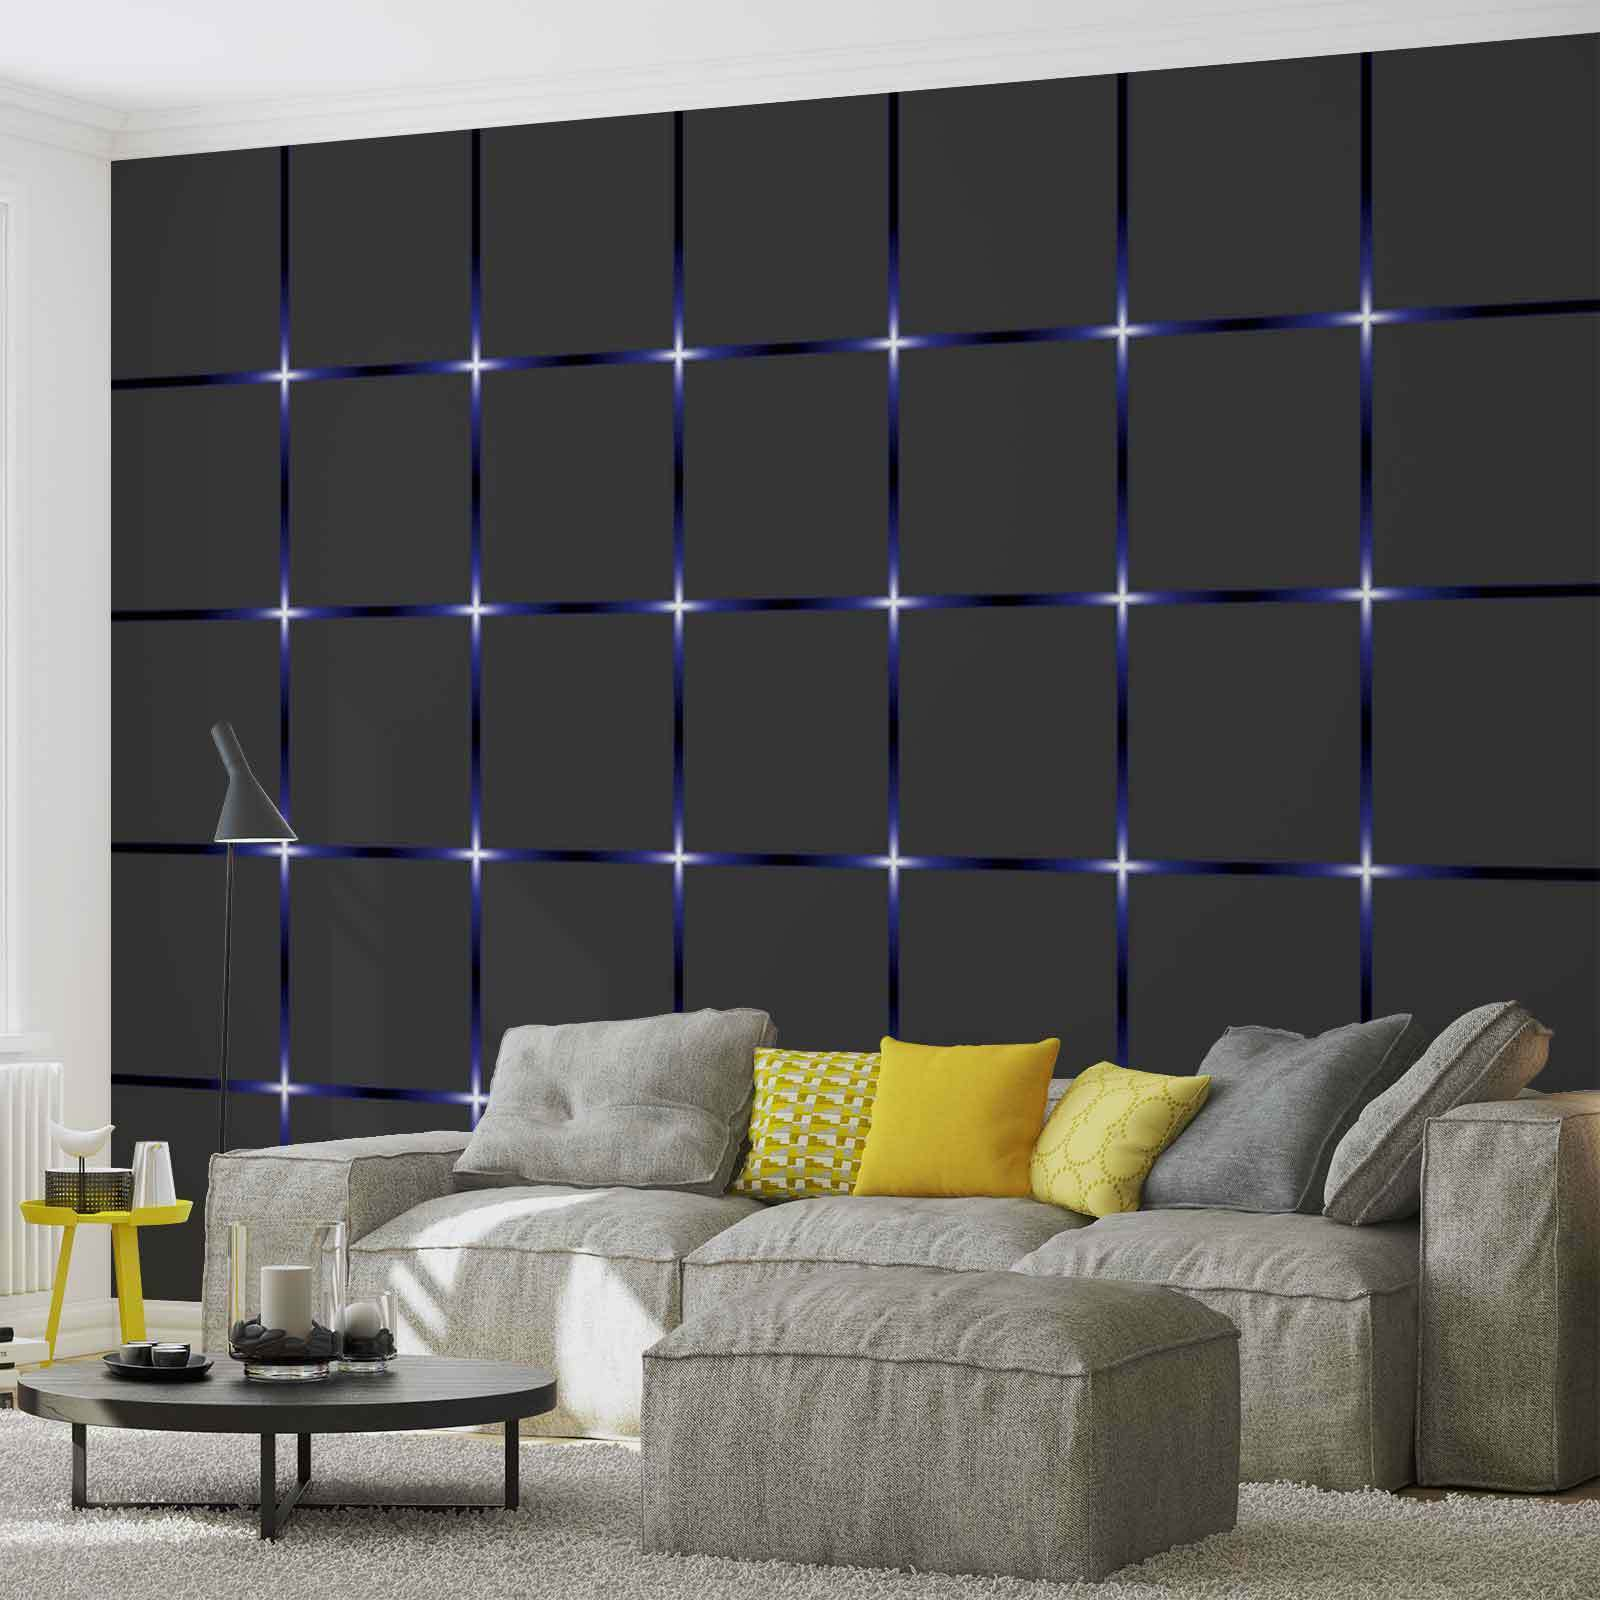 wall mural square black blue xxl photo wallpaper 2155dc. Black Bedroom Furniture Sets. Home Design Ideas